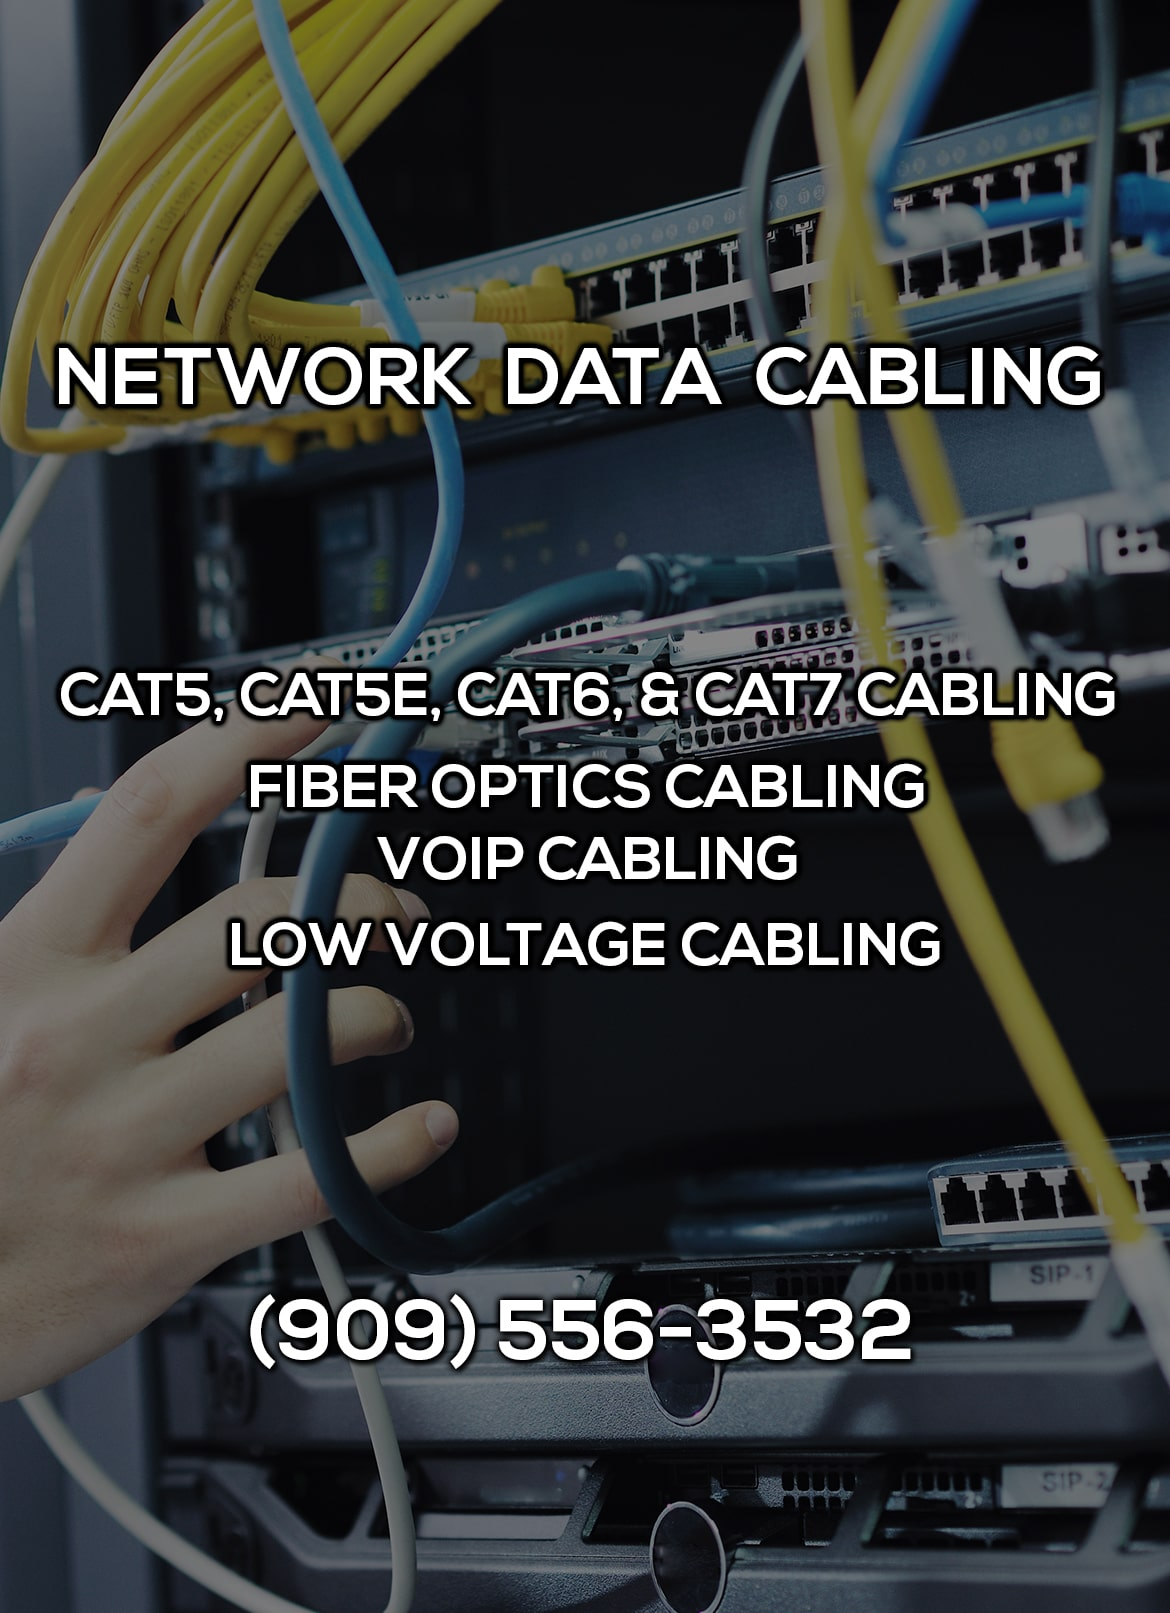 Network Data Cabling in Canyon Lake CA